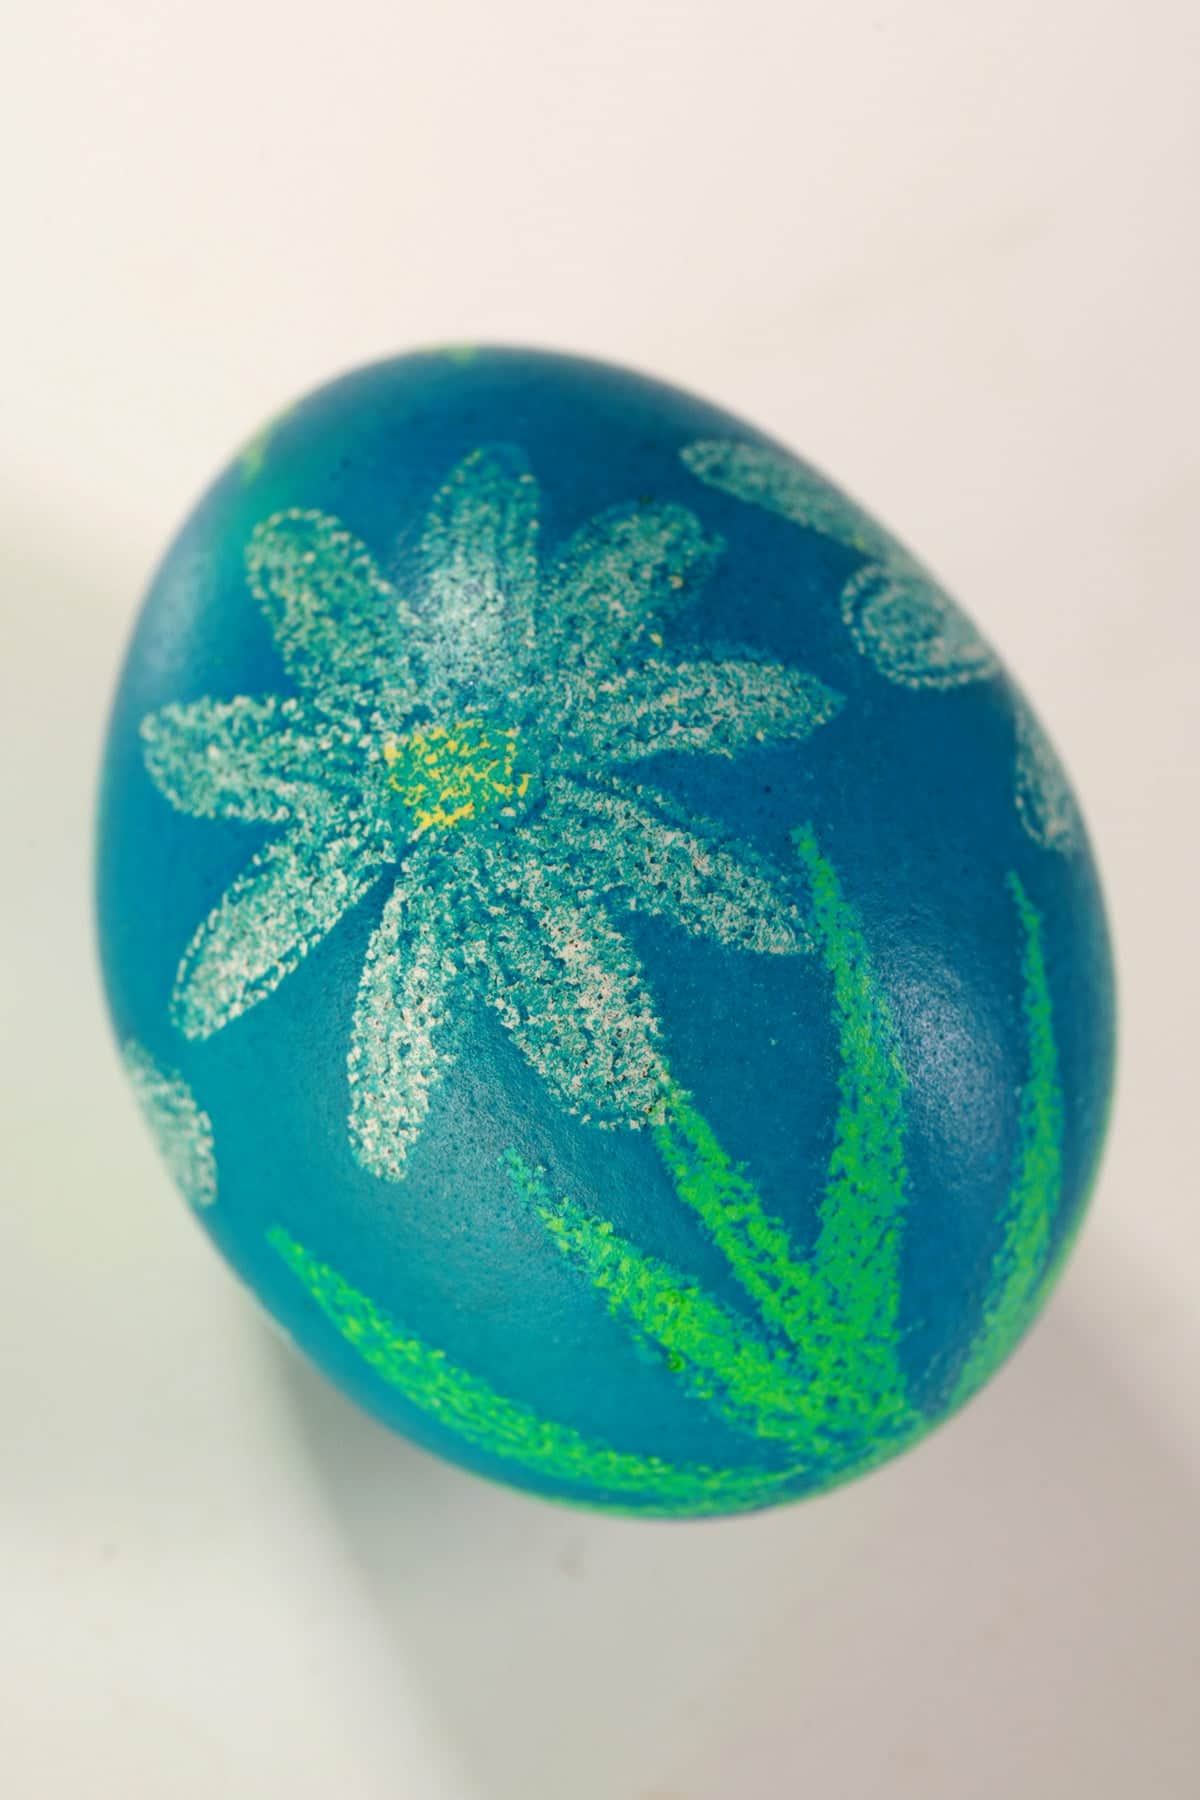 A blue pysanky dyed egg has white daisies with green stems on it.